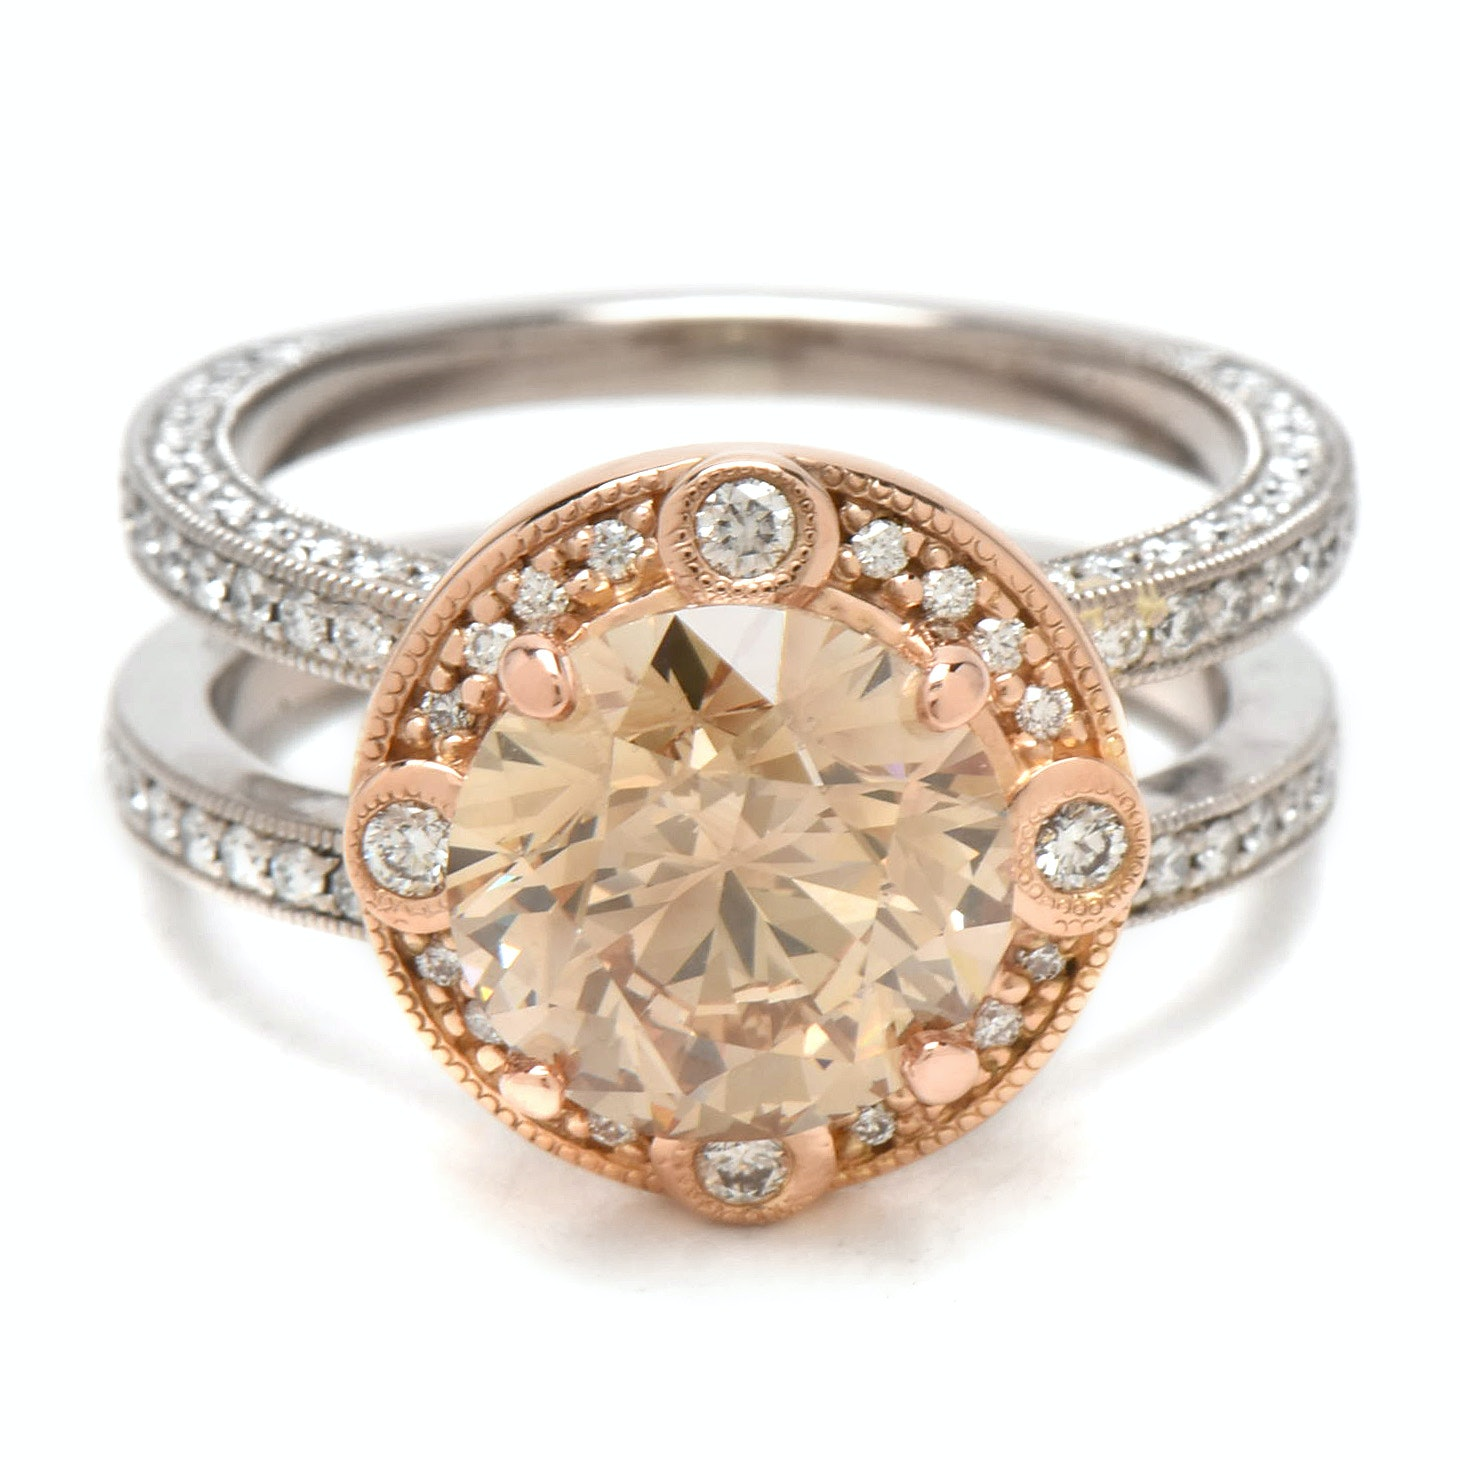 Palladium with 18K Rose Gold 4.02 CTW Diamond Ring with GIA Report